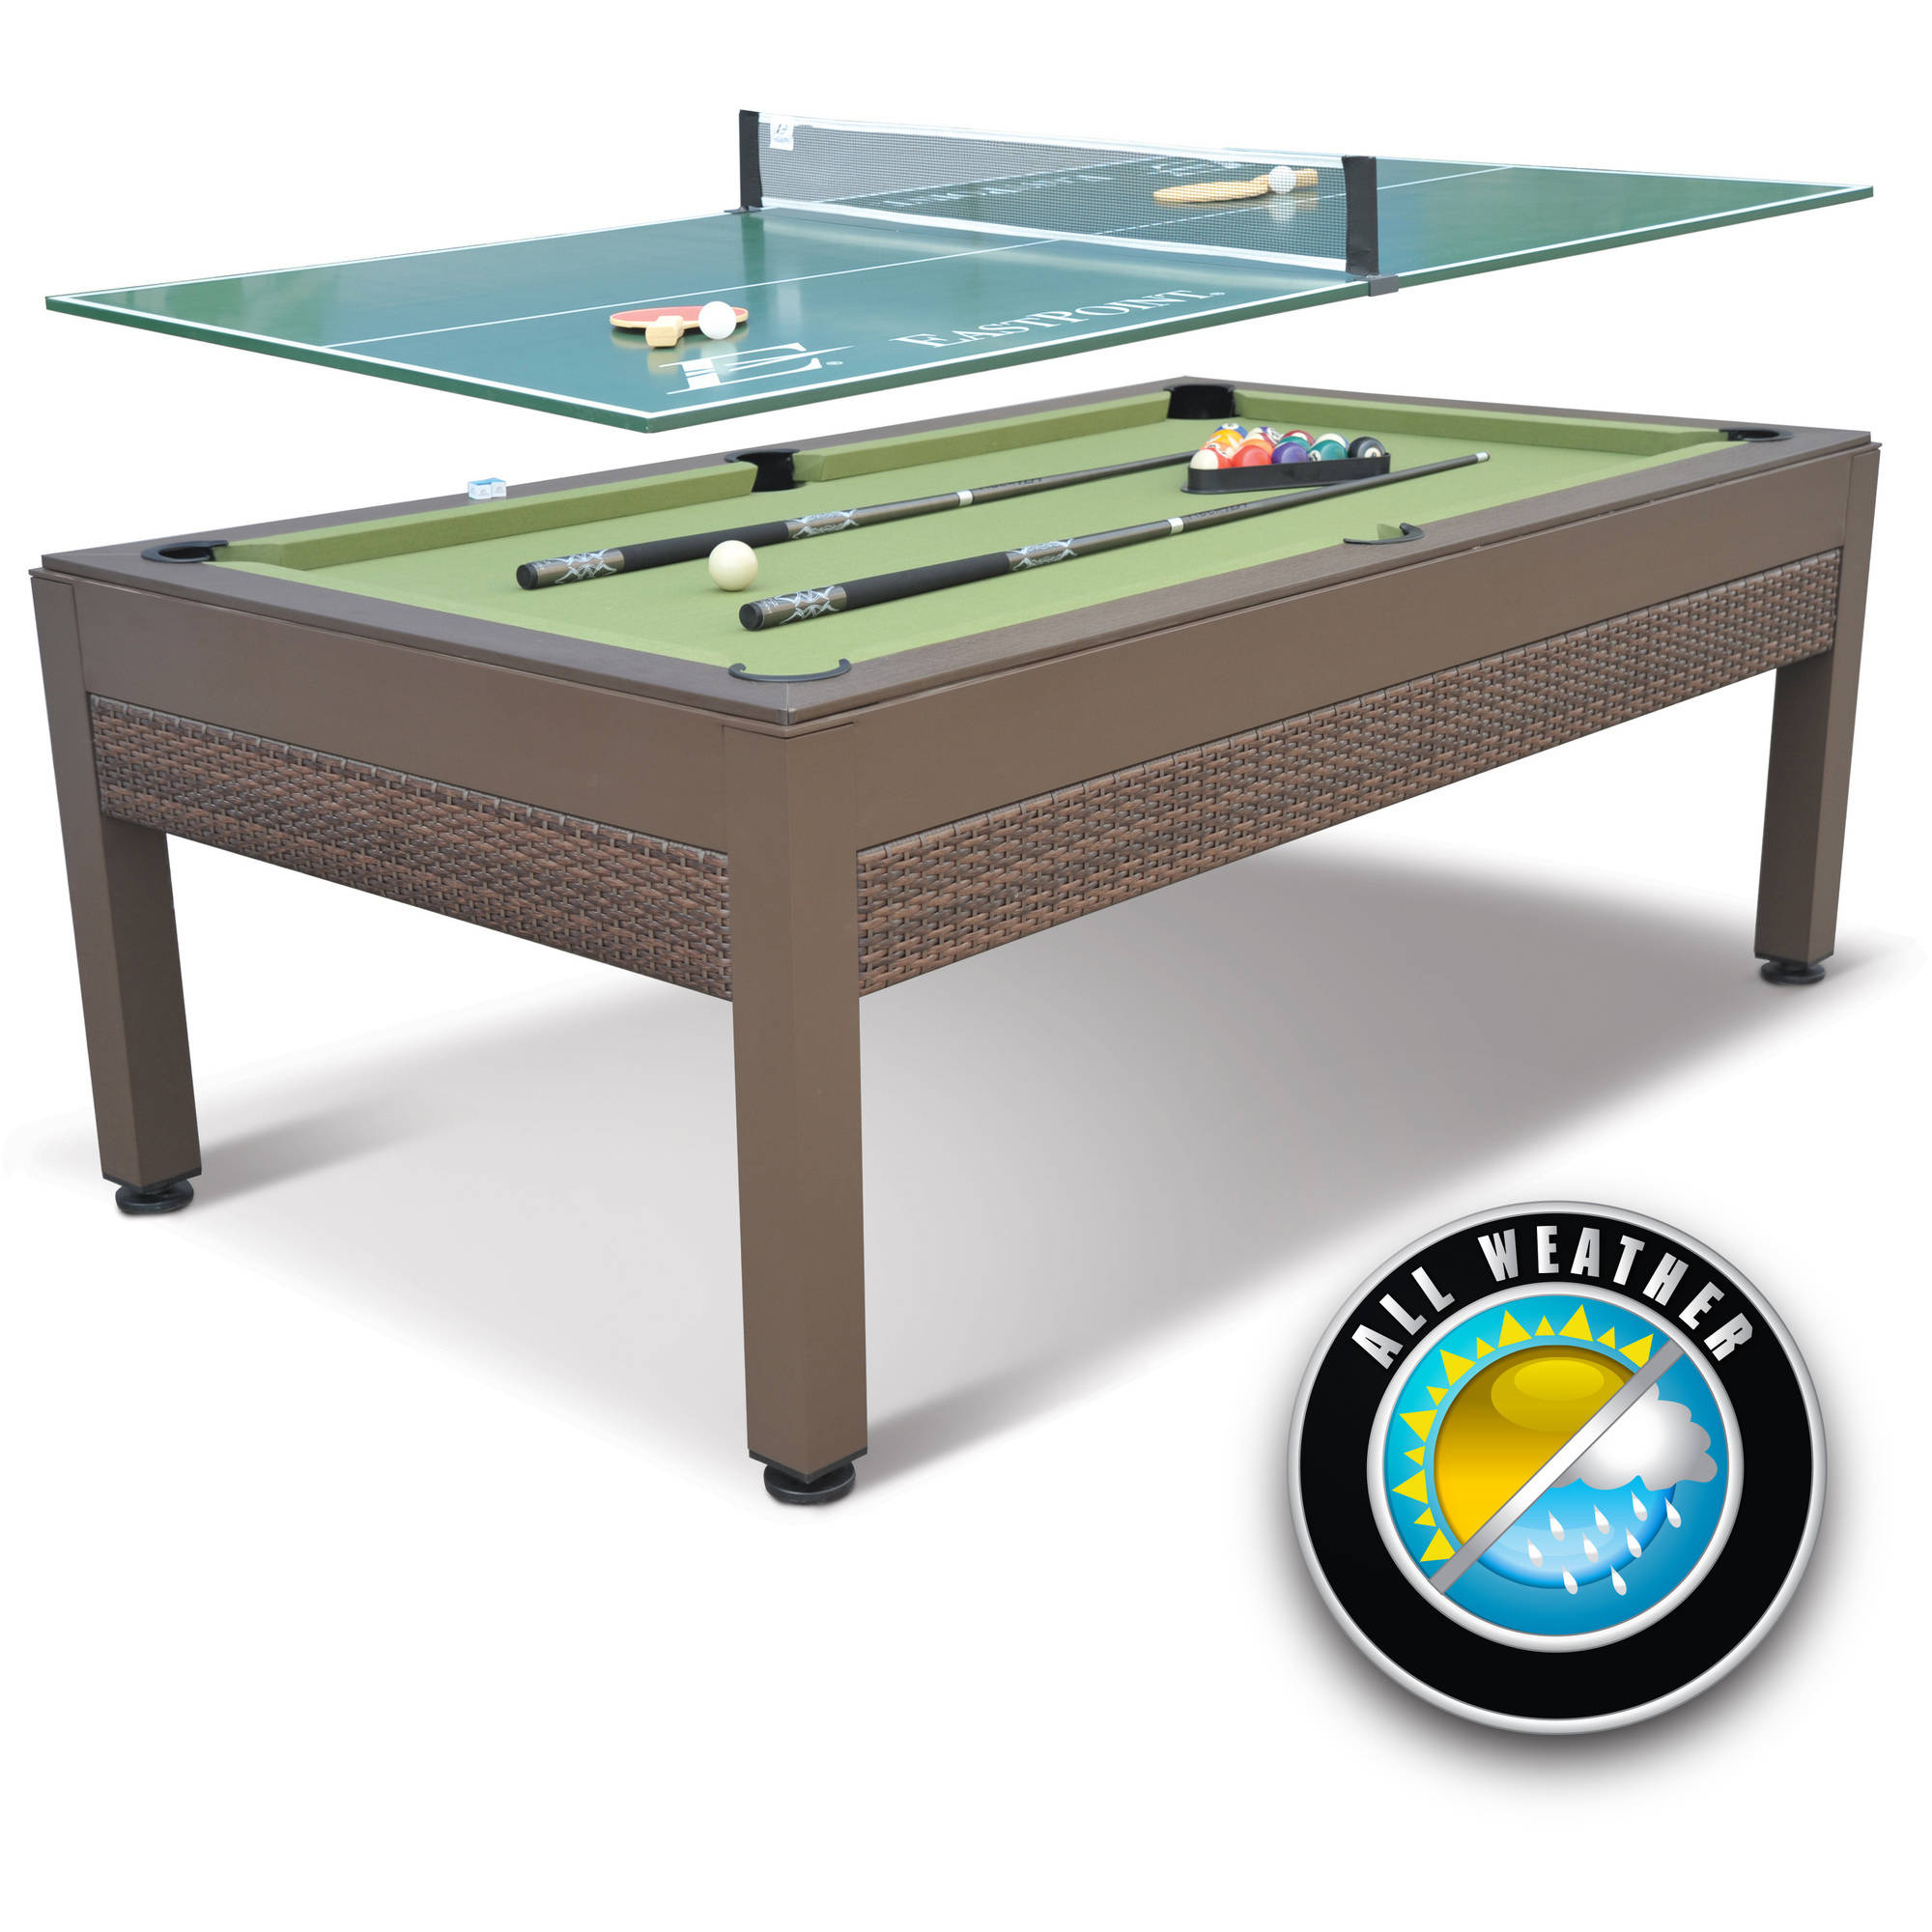 EastPoint Sports 84 Inch Outdoor Billiard Pool Table With Table Tennis Top